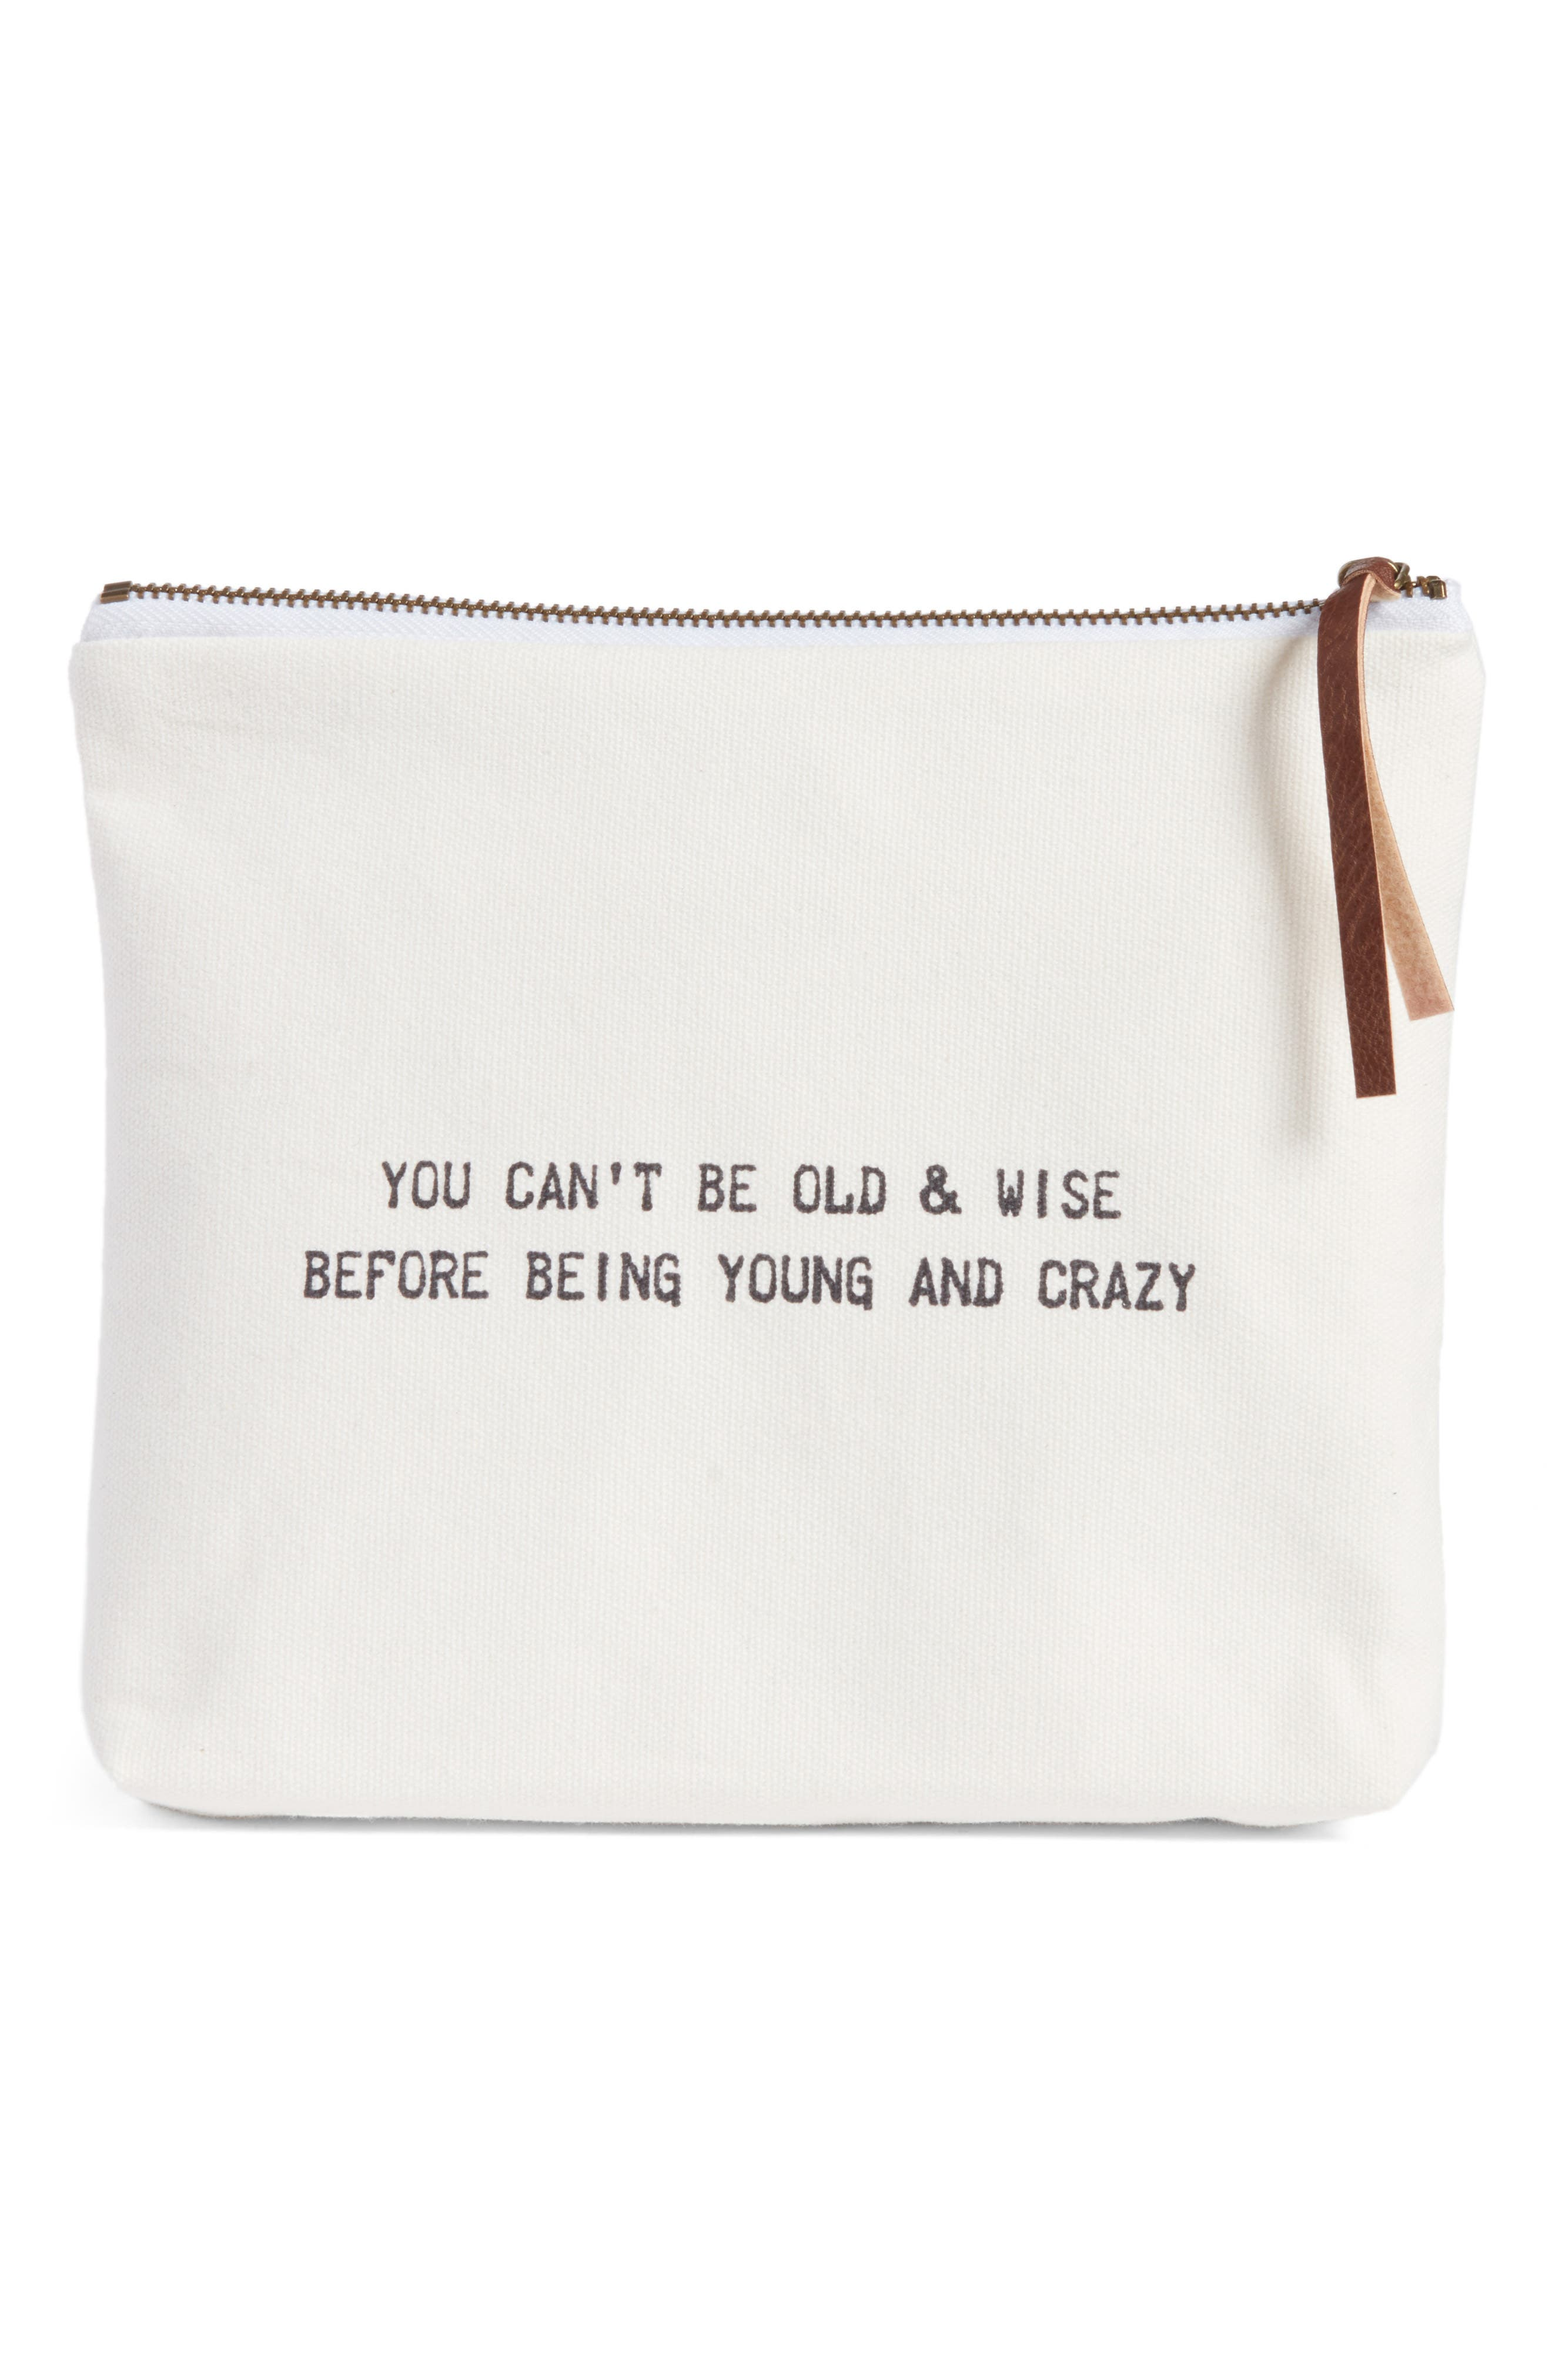 Old & Wise Before Young & Crazy Zip Top Accessory Bag,                         Main,                         color, 900